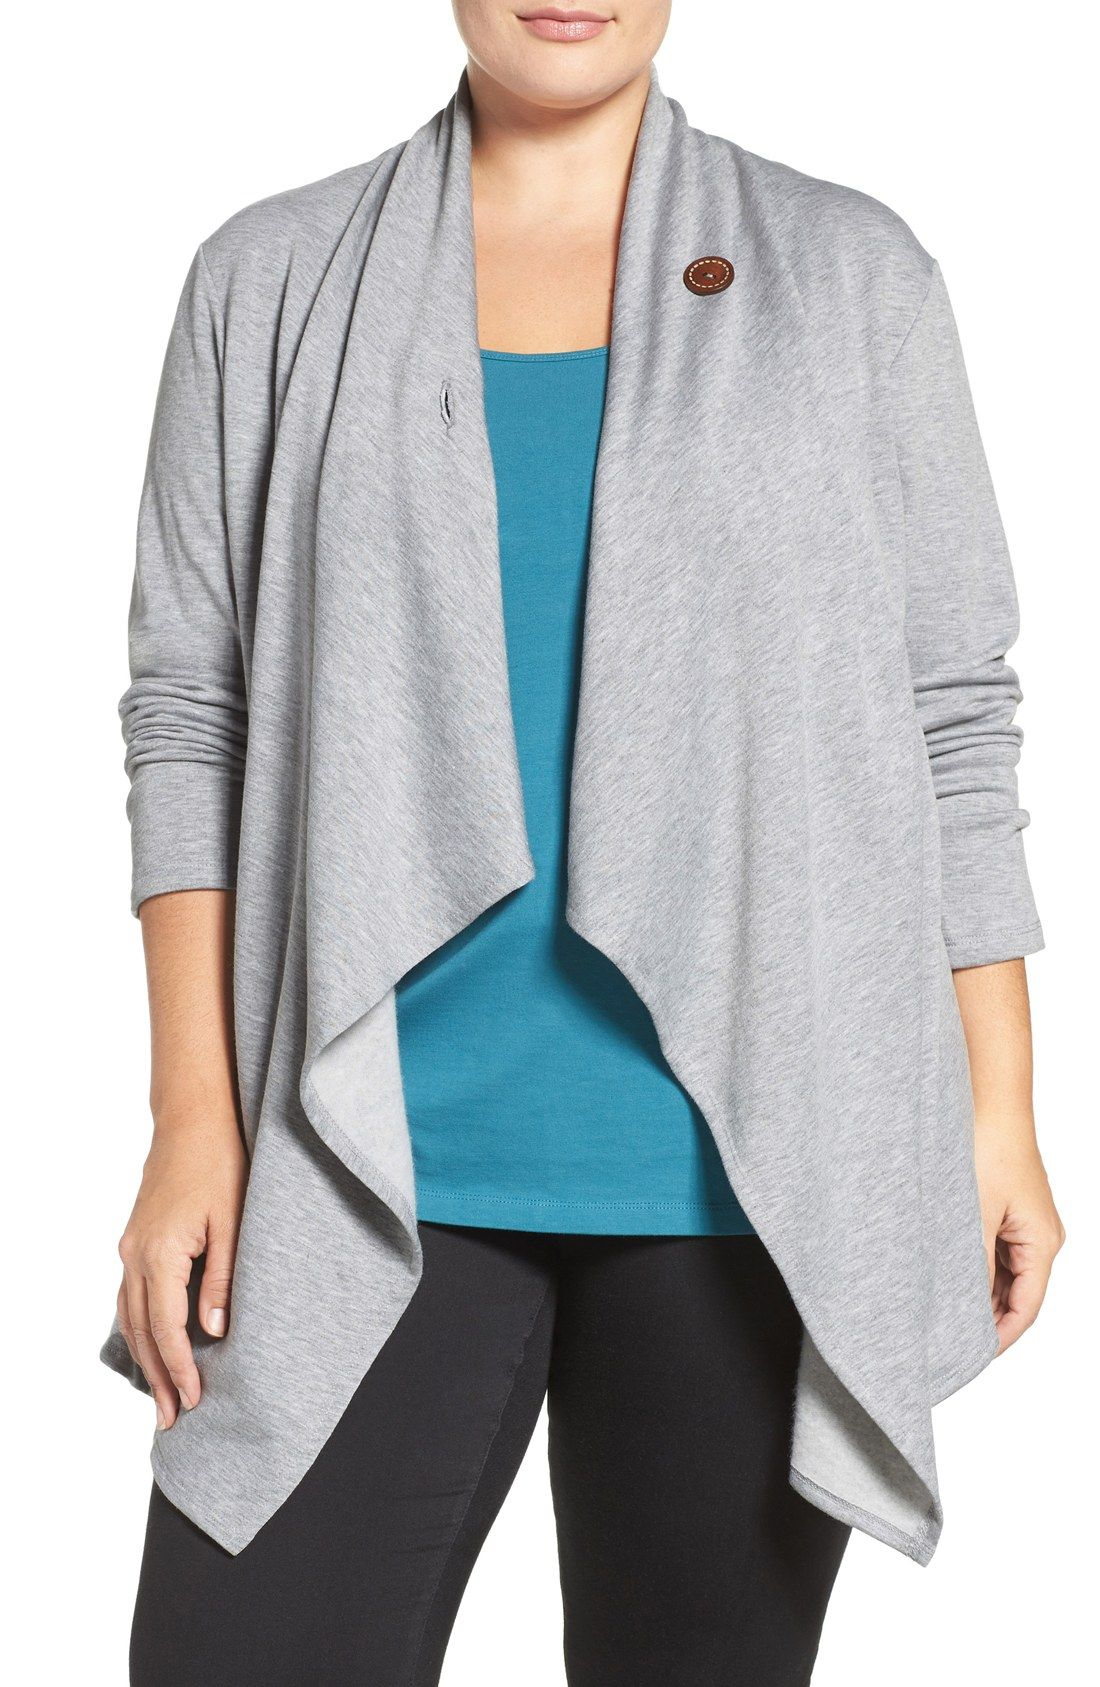 One-Button Fleece Cardigan | Bobeau, Frees and The necks